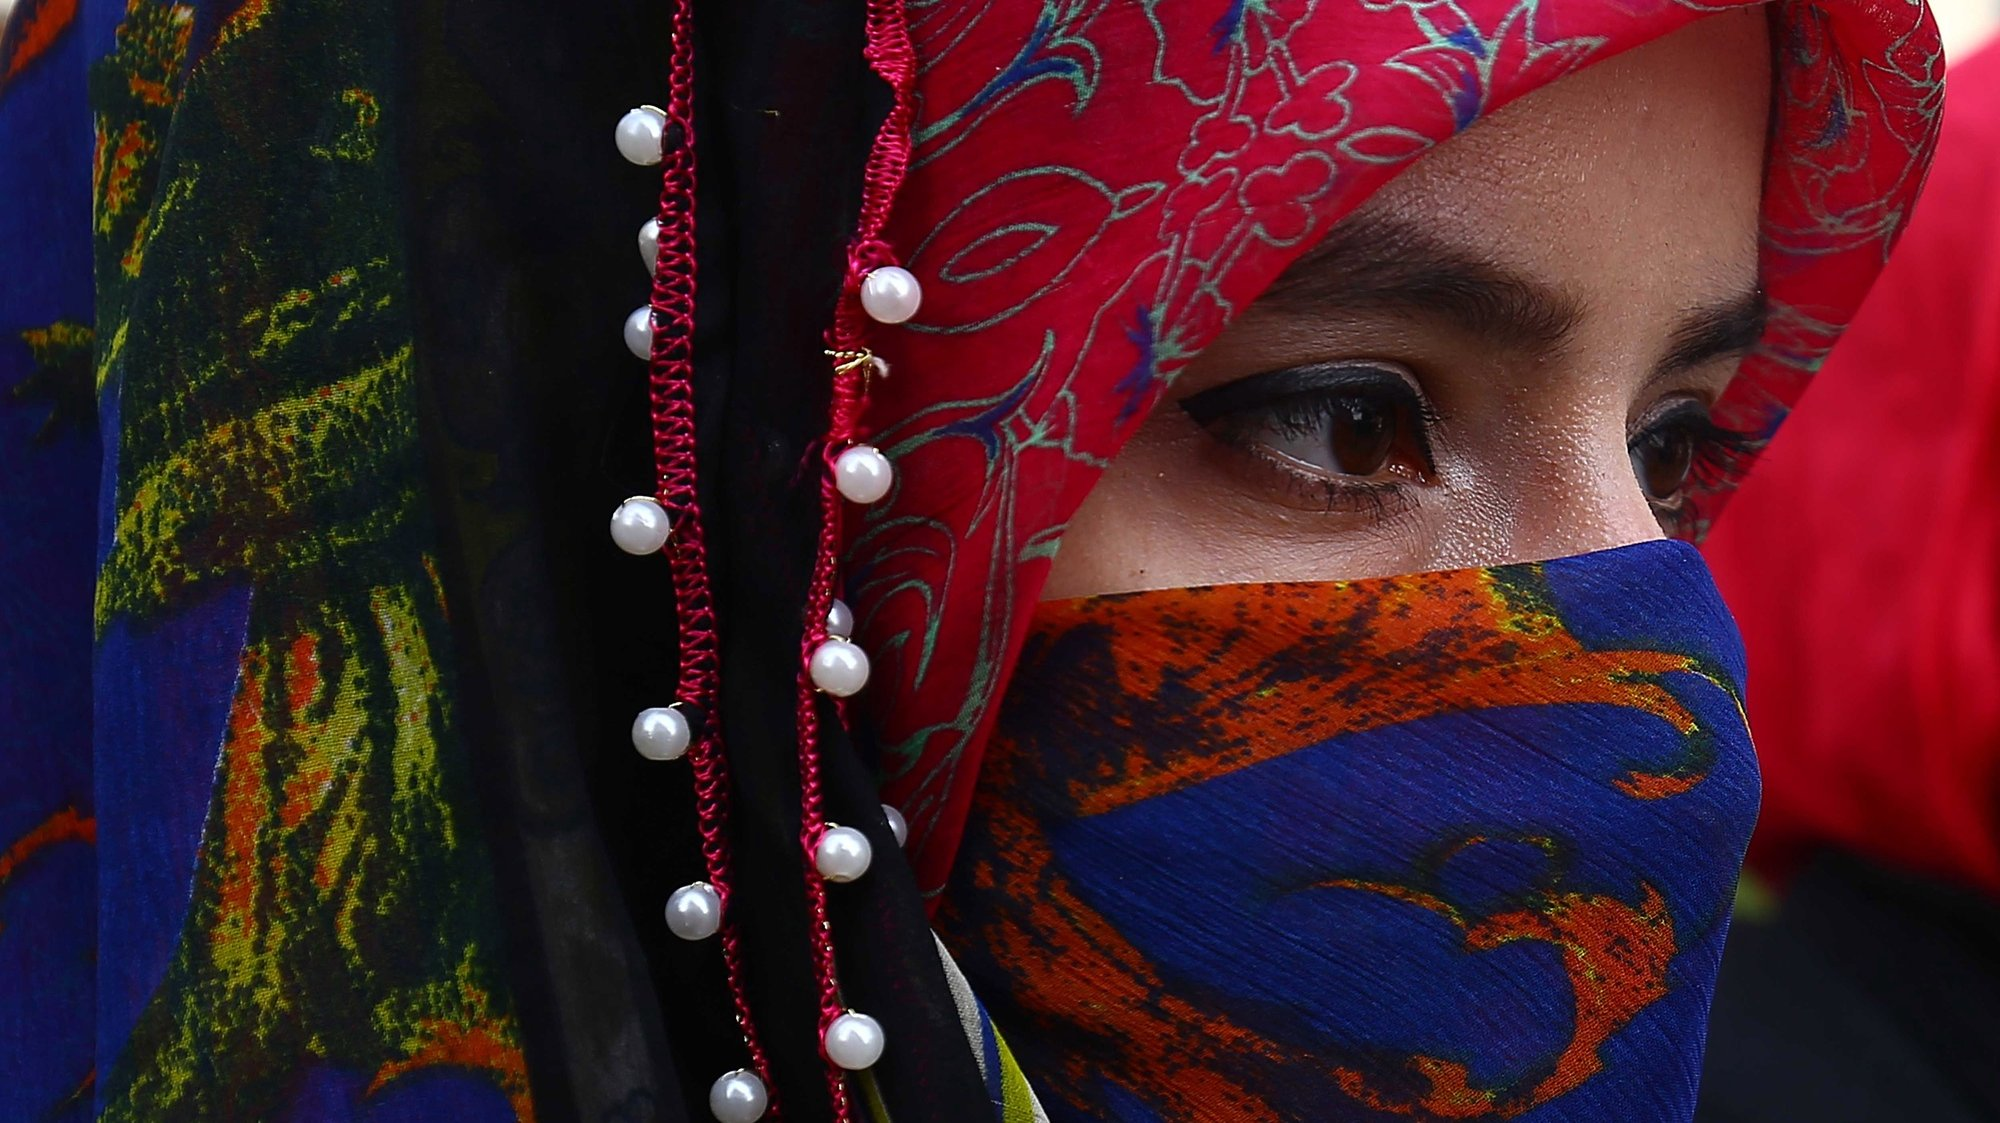 epa08979888 A Pakistani woman hold placard to marks the World Hijab (Veil) Day in Karachi, Pakistan, 01 February 2020. International Hijab Day was observed to show solidarity with Muslim women in countries where laws ban full-face veils.  EPA/SHAHZAIB AKBER